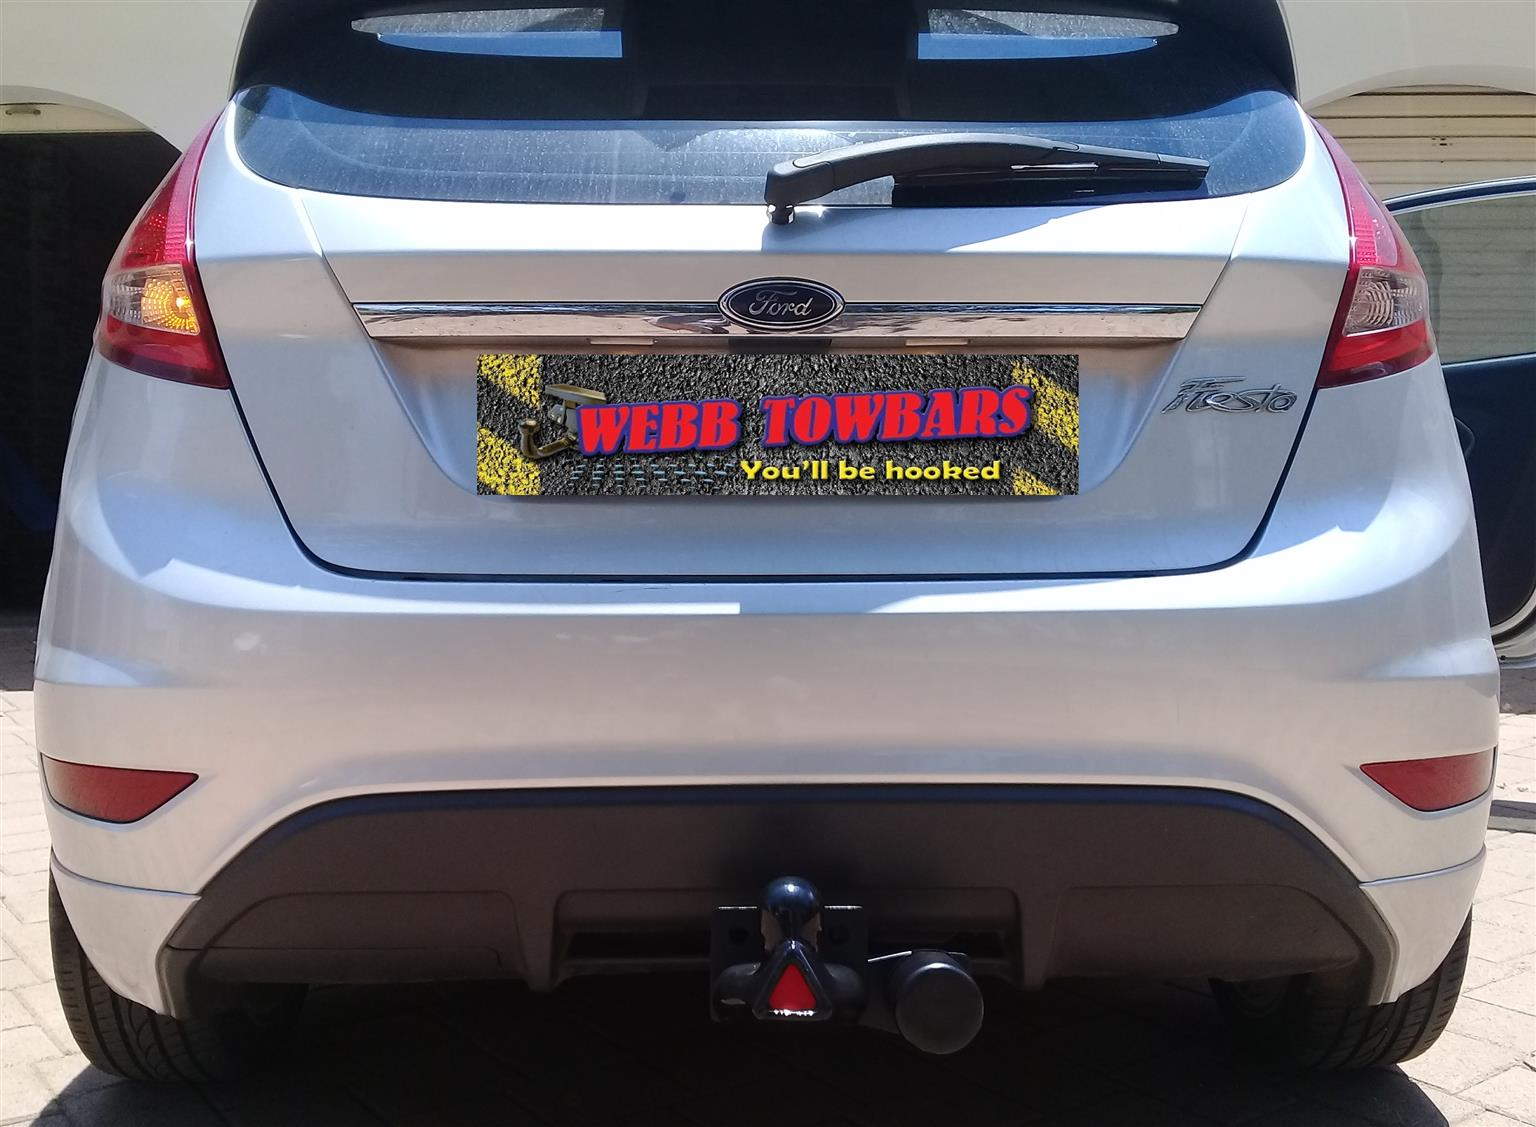 Ford Standard/Detachable Towbars, Double Tube & Step Towbars